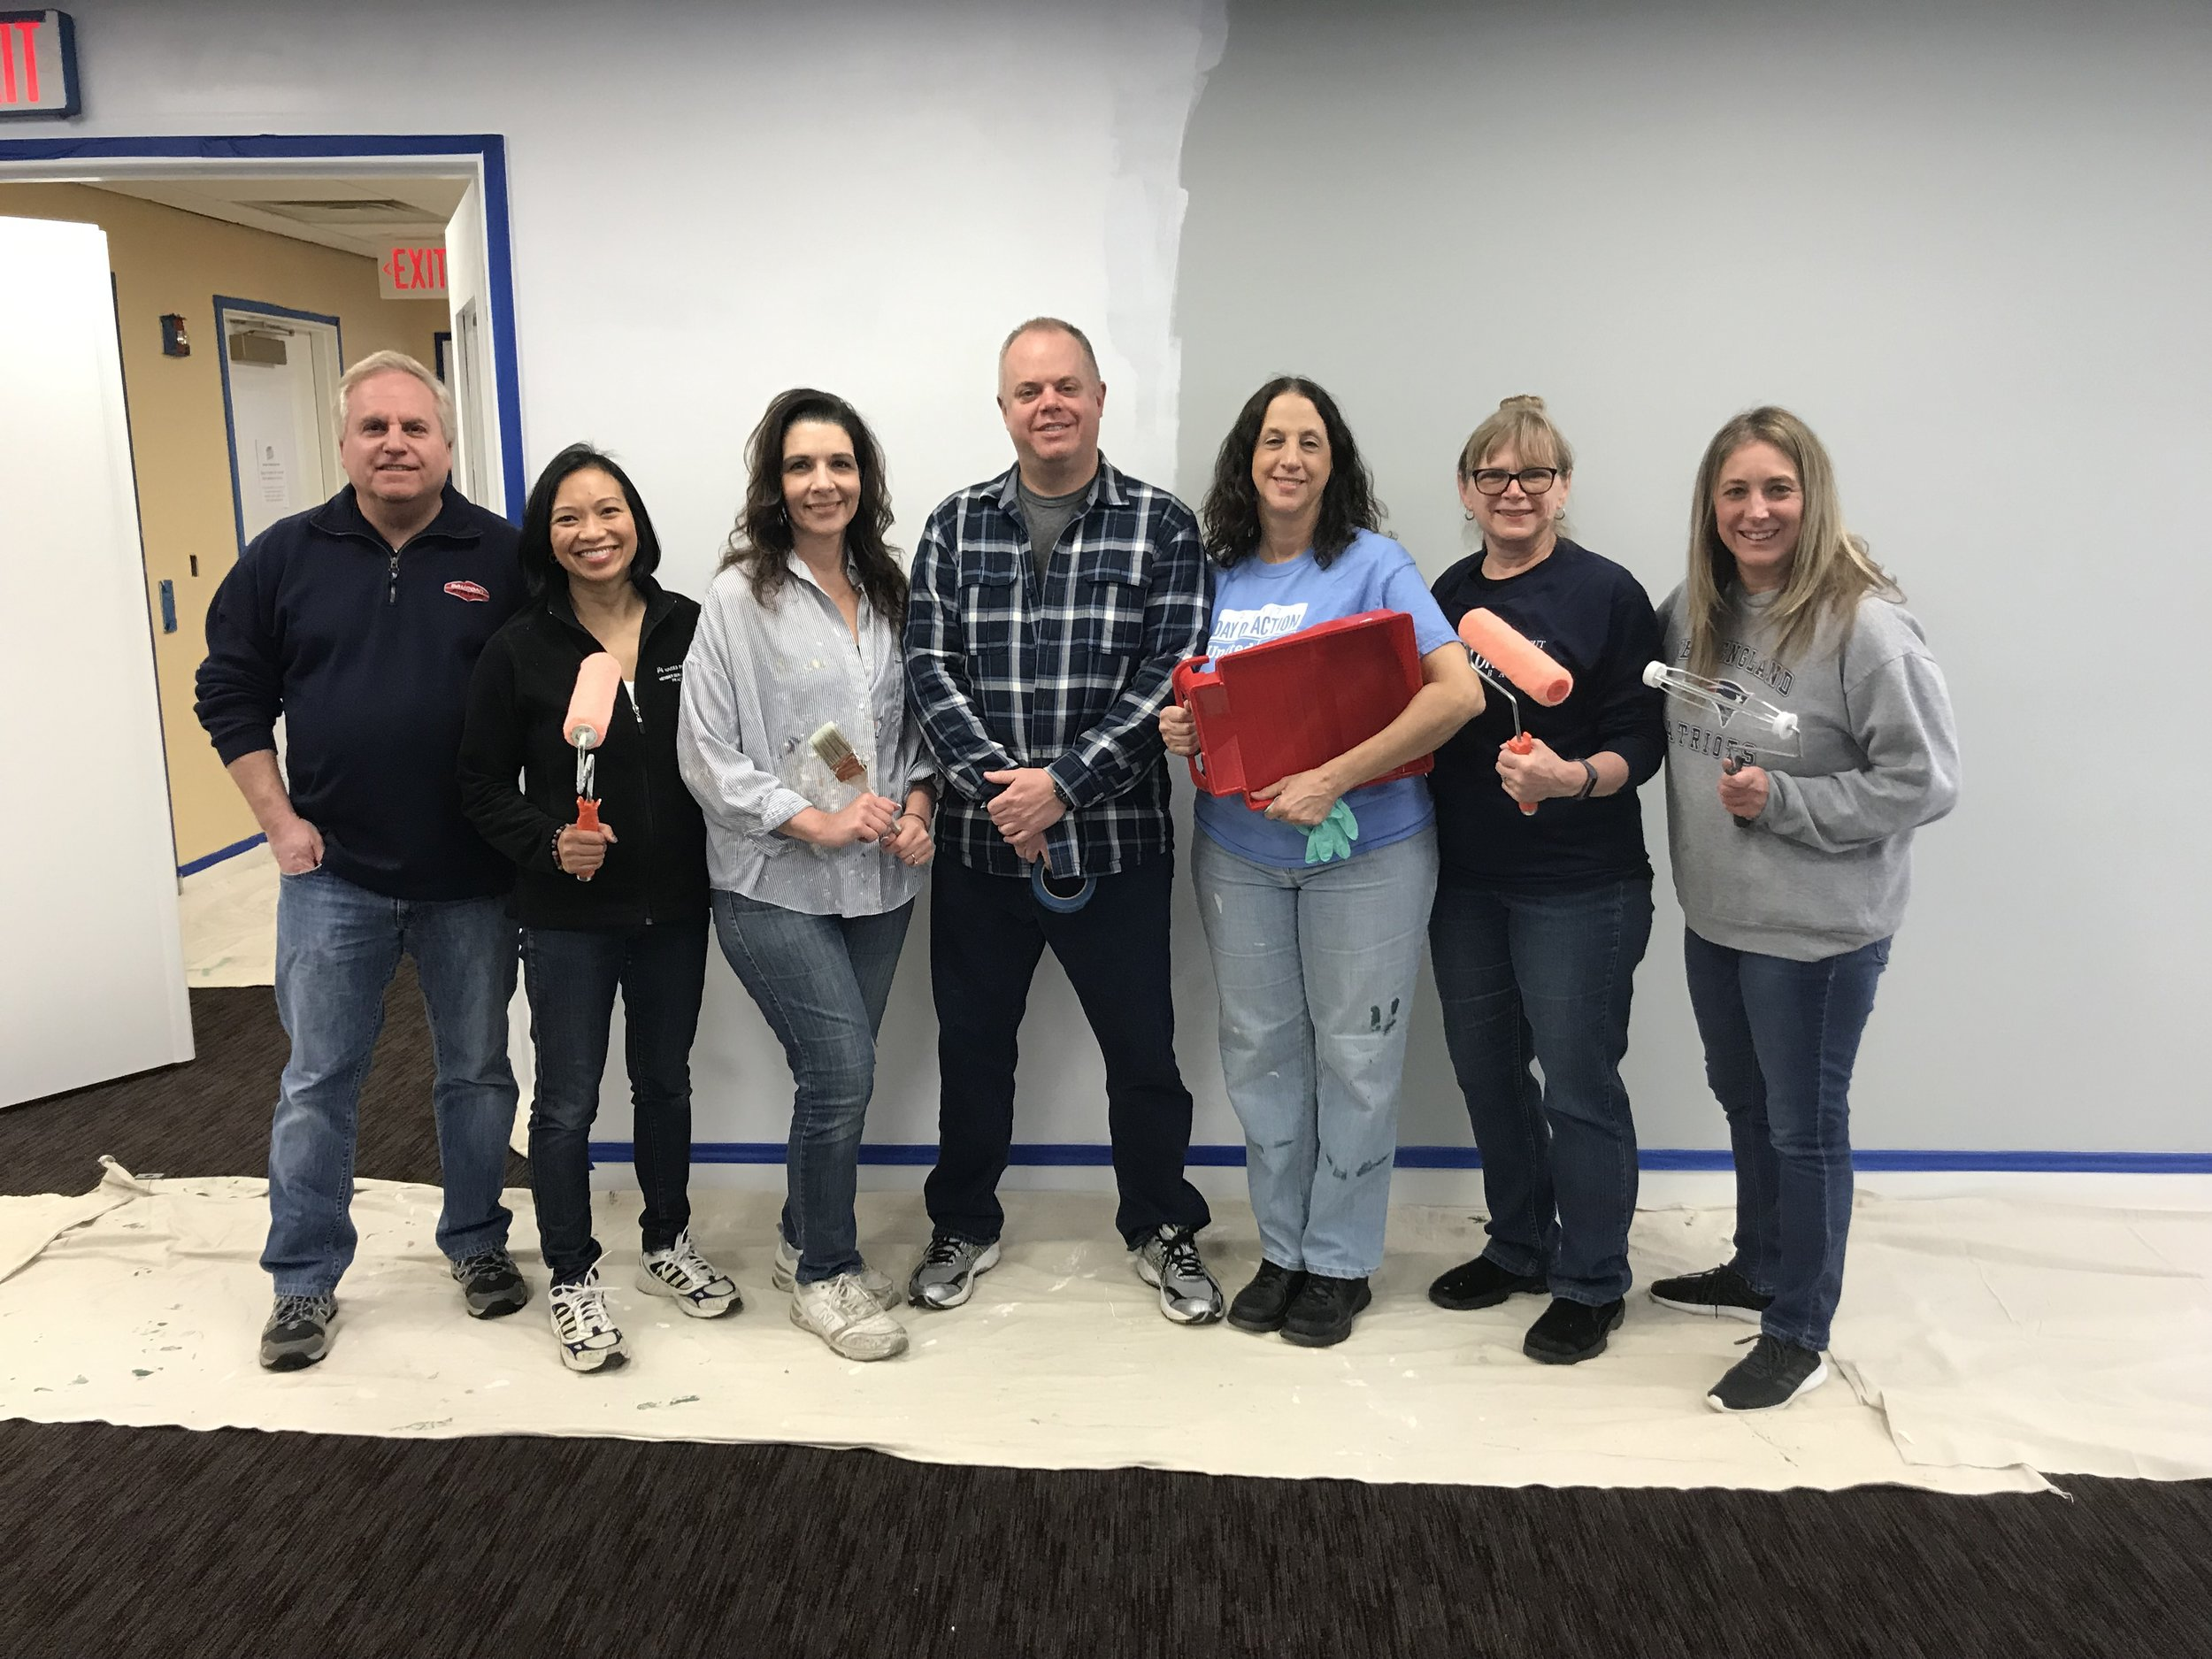 Employees from Boehringer Ingelheim painted the conference room with the building was completed.